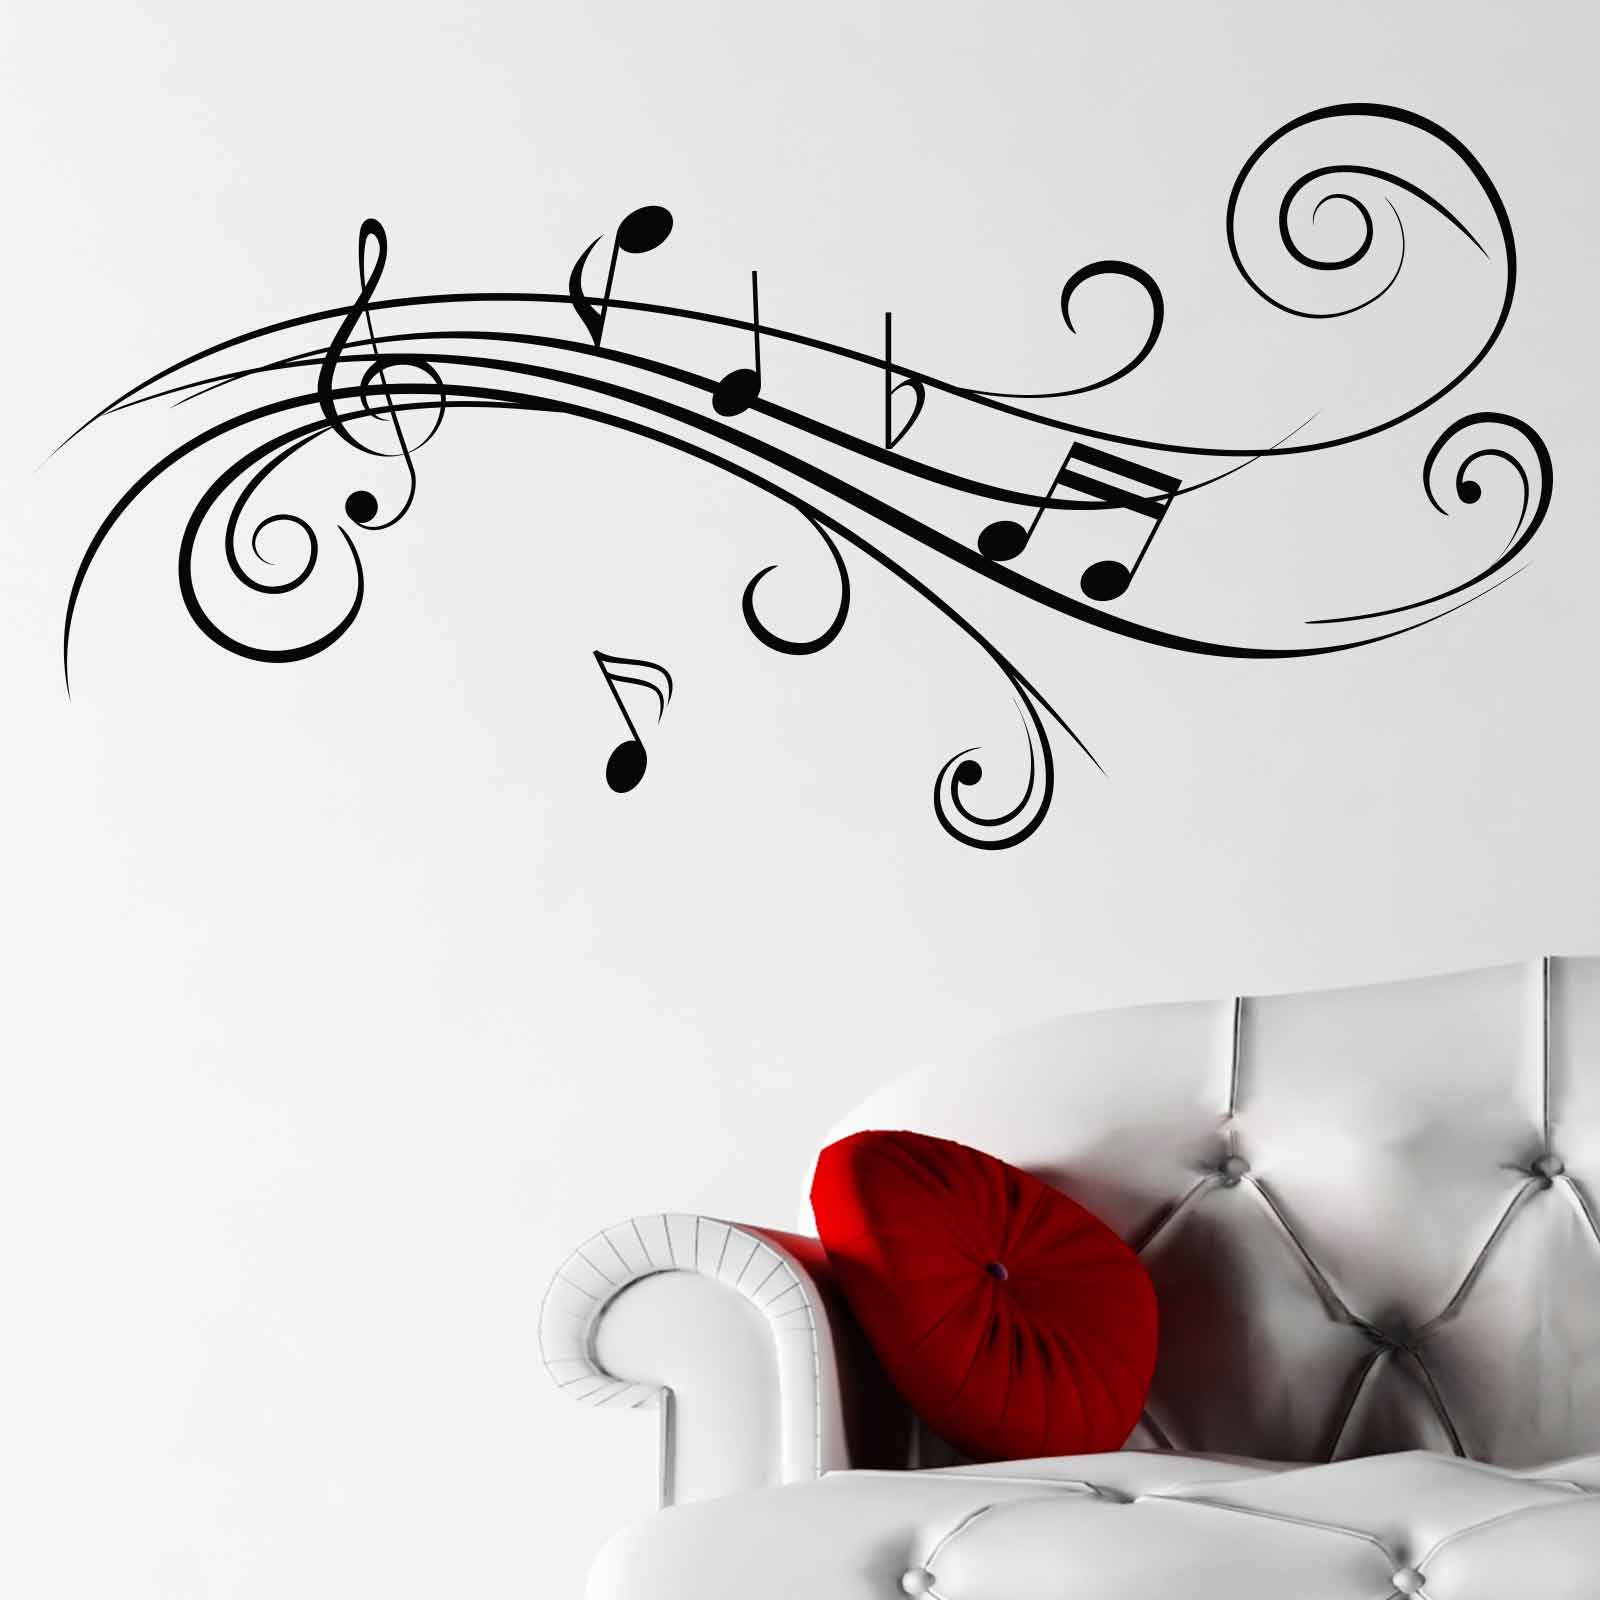 cool musical notes v2 wall sticker world of wall stickers cool musical notes v2 wall sticker decal a